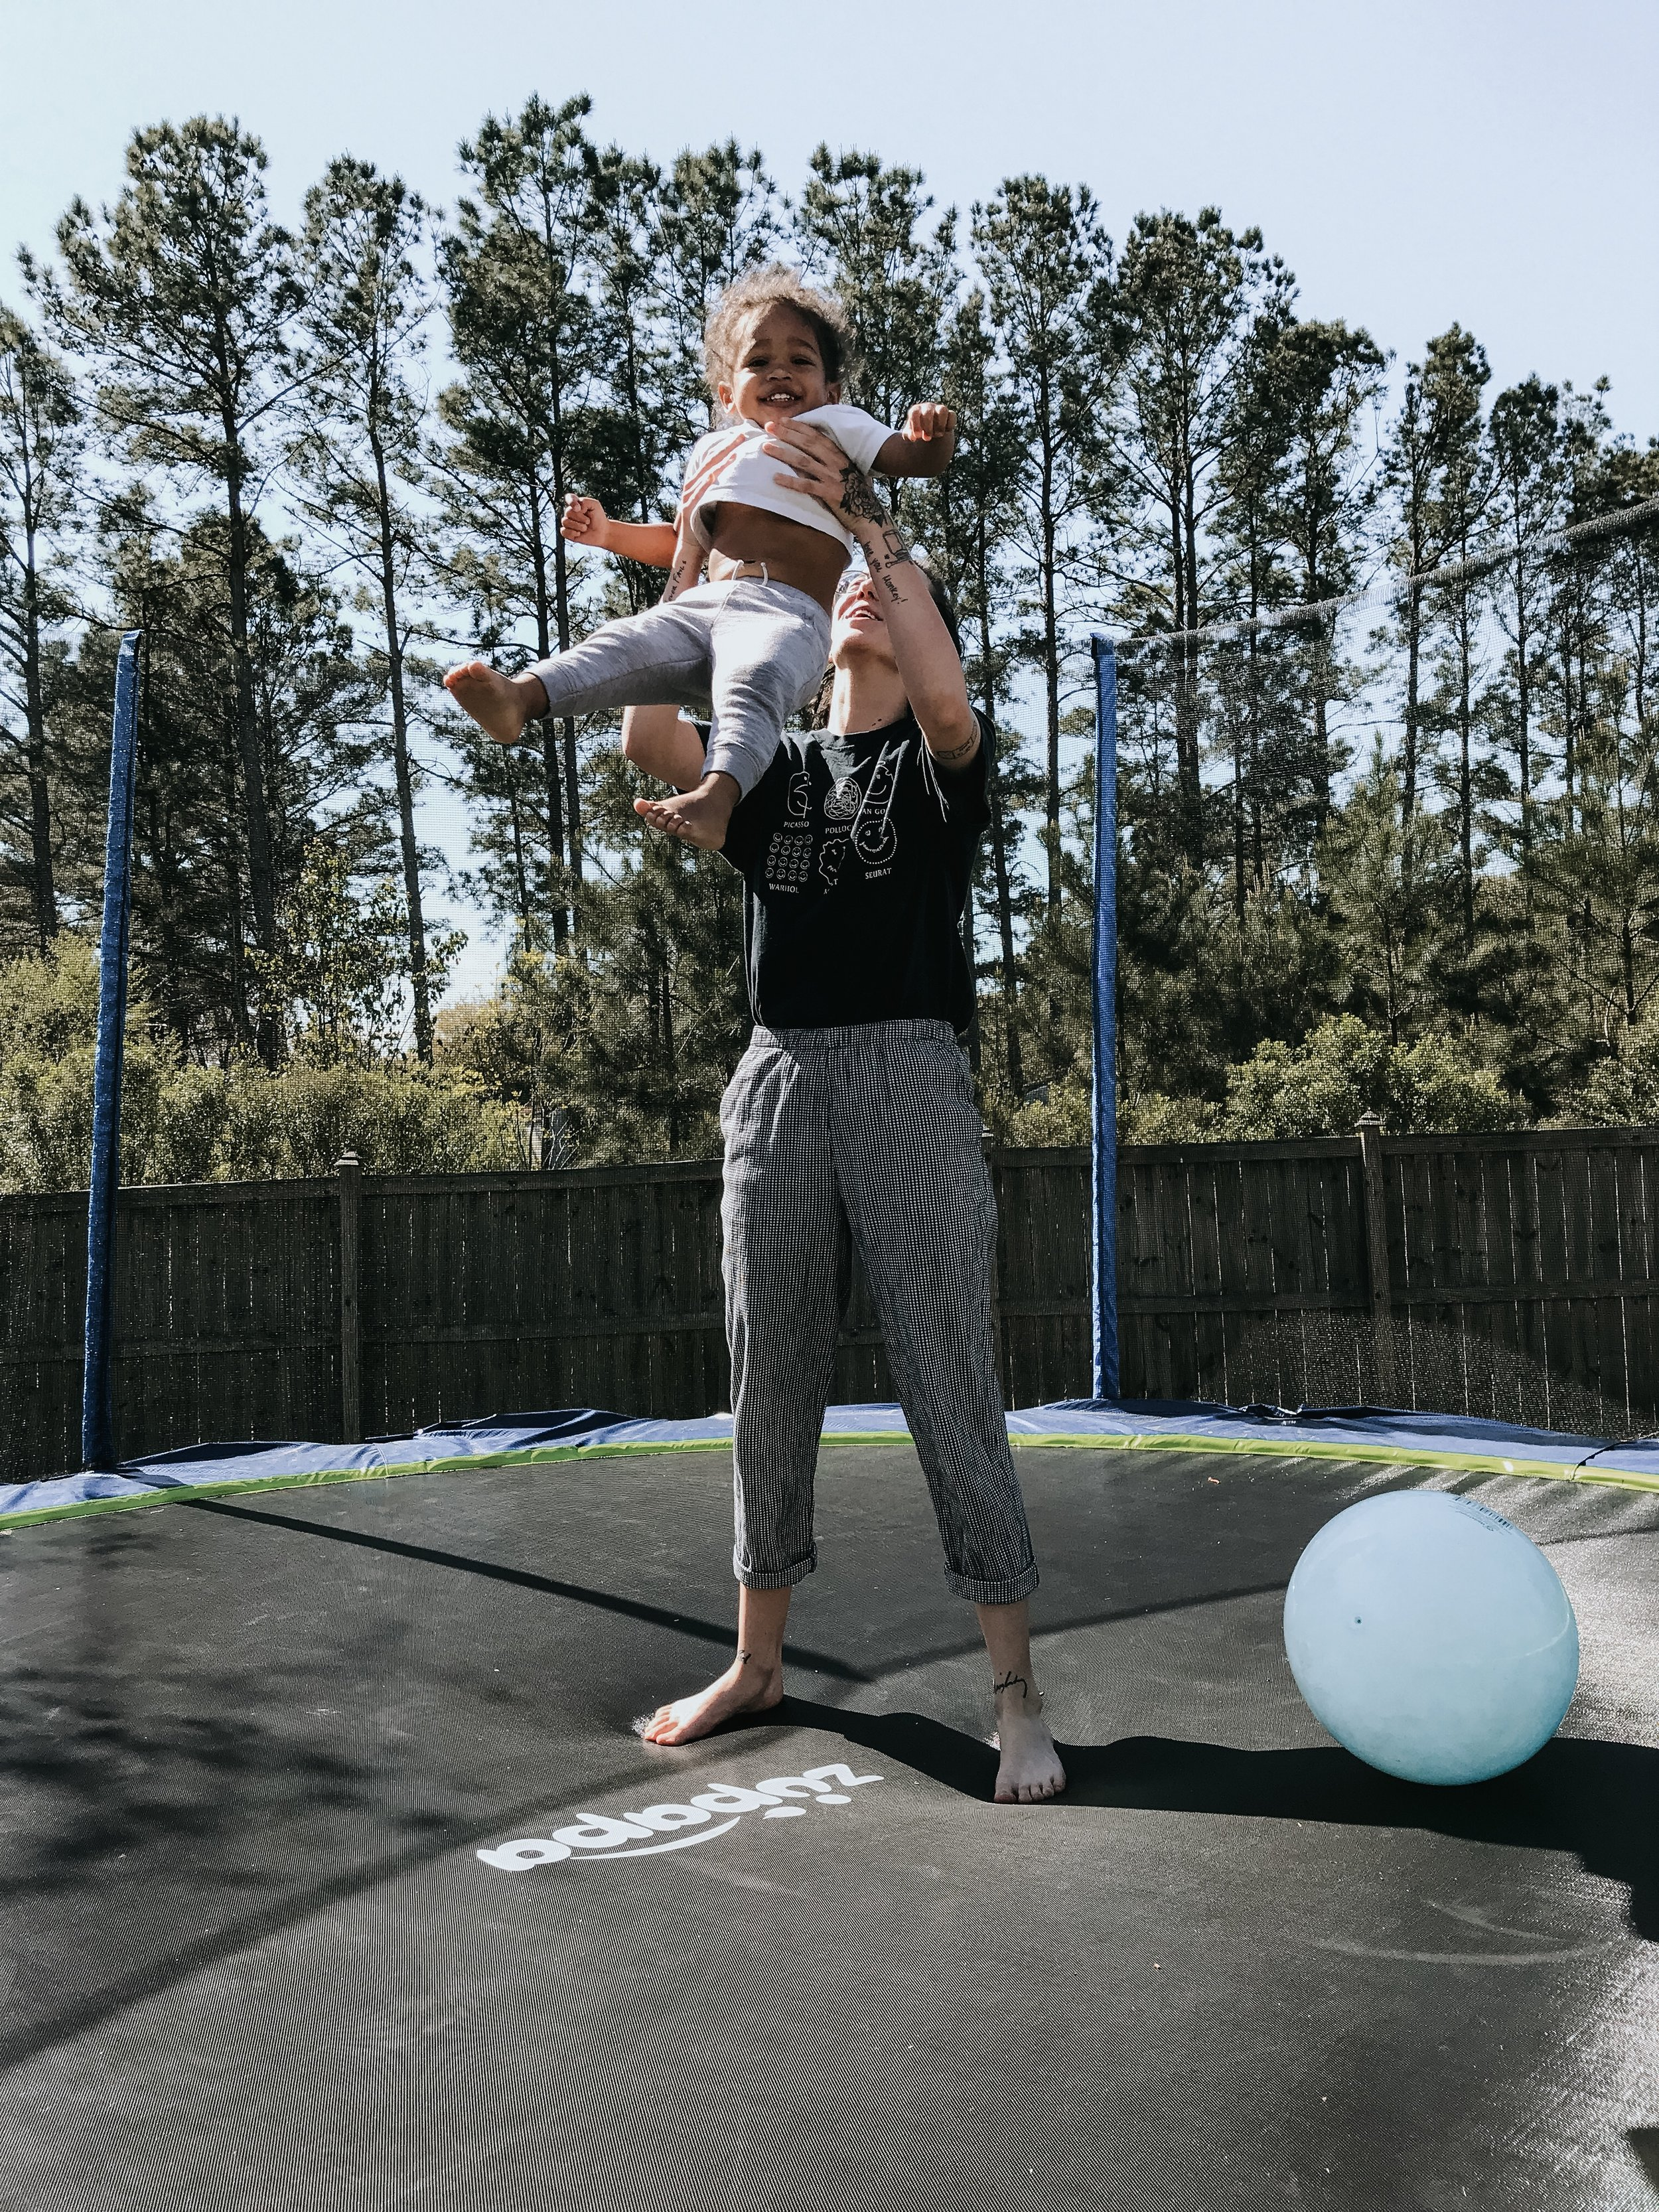 Not our OT but we wouldn't have realized a trampoline was needed if it wasn't for her!